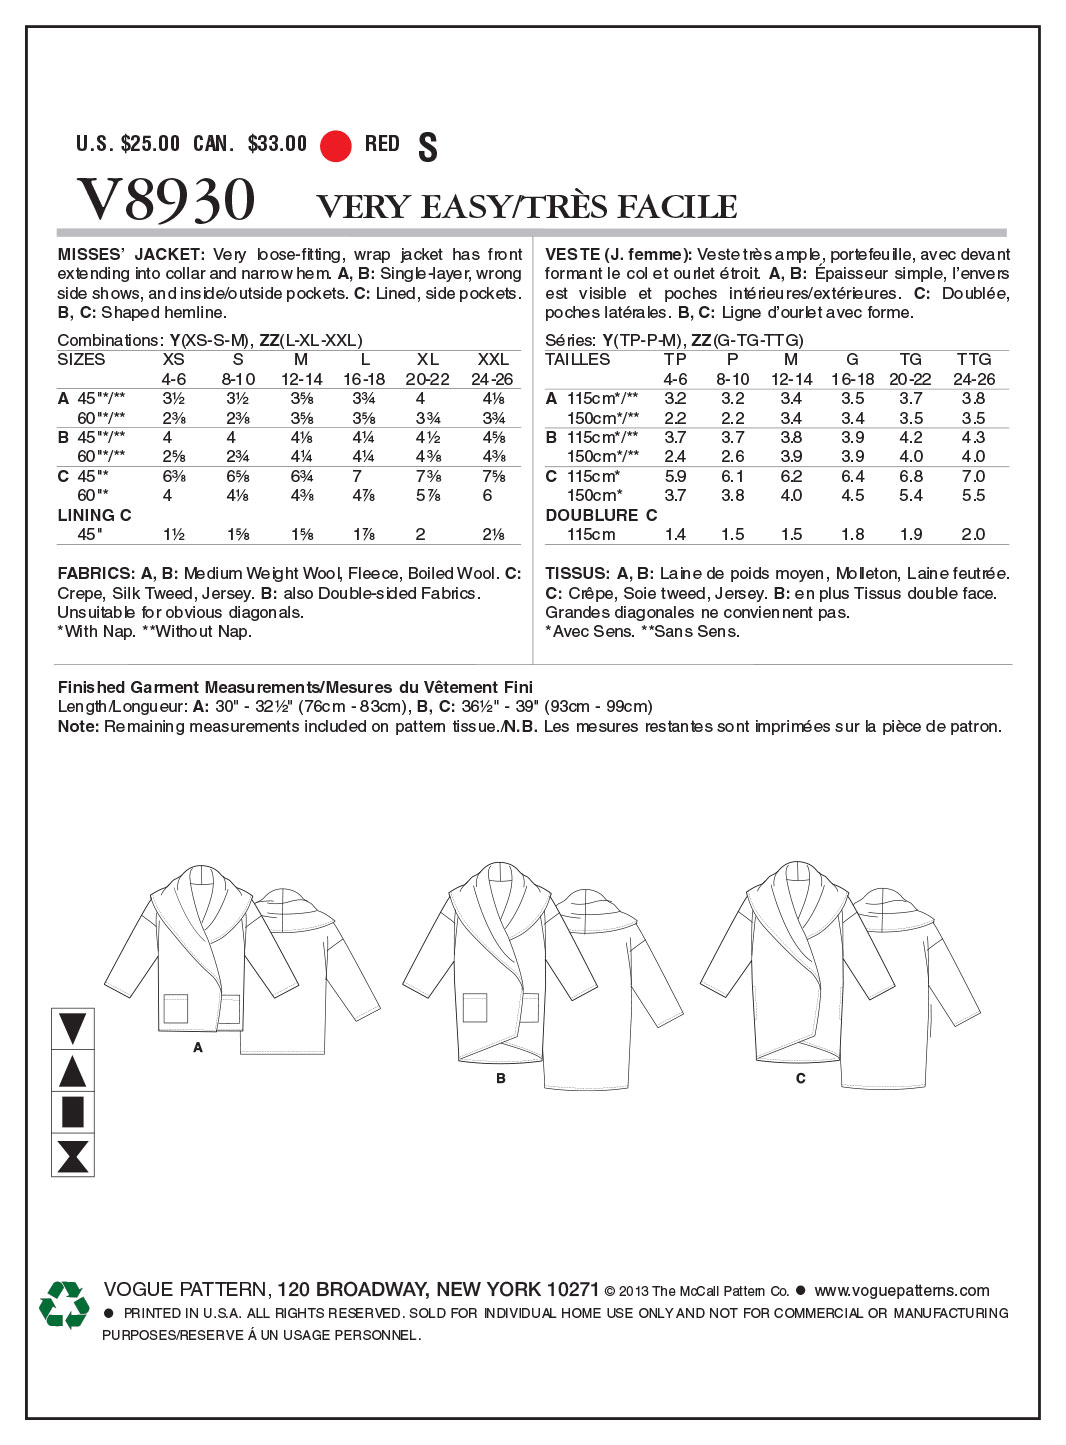 Vogue Patterns Misses Outerwear-V8930